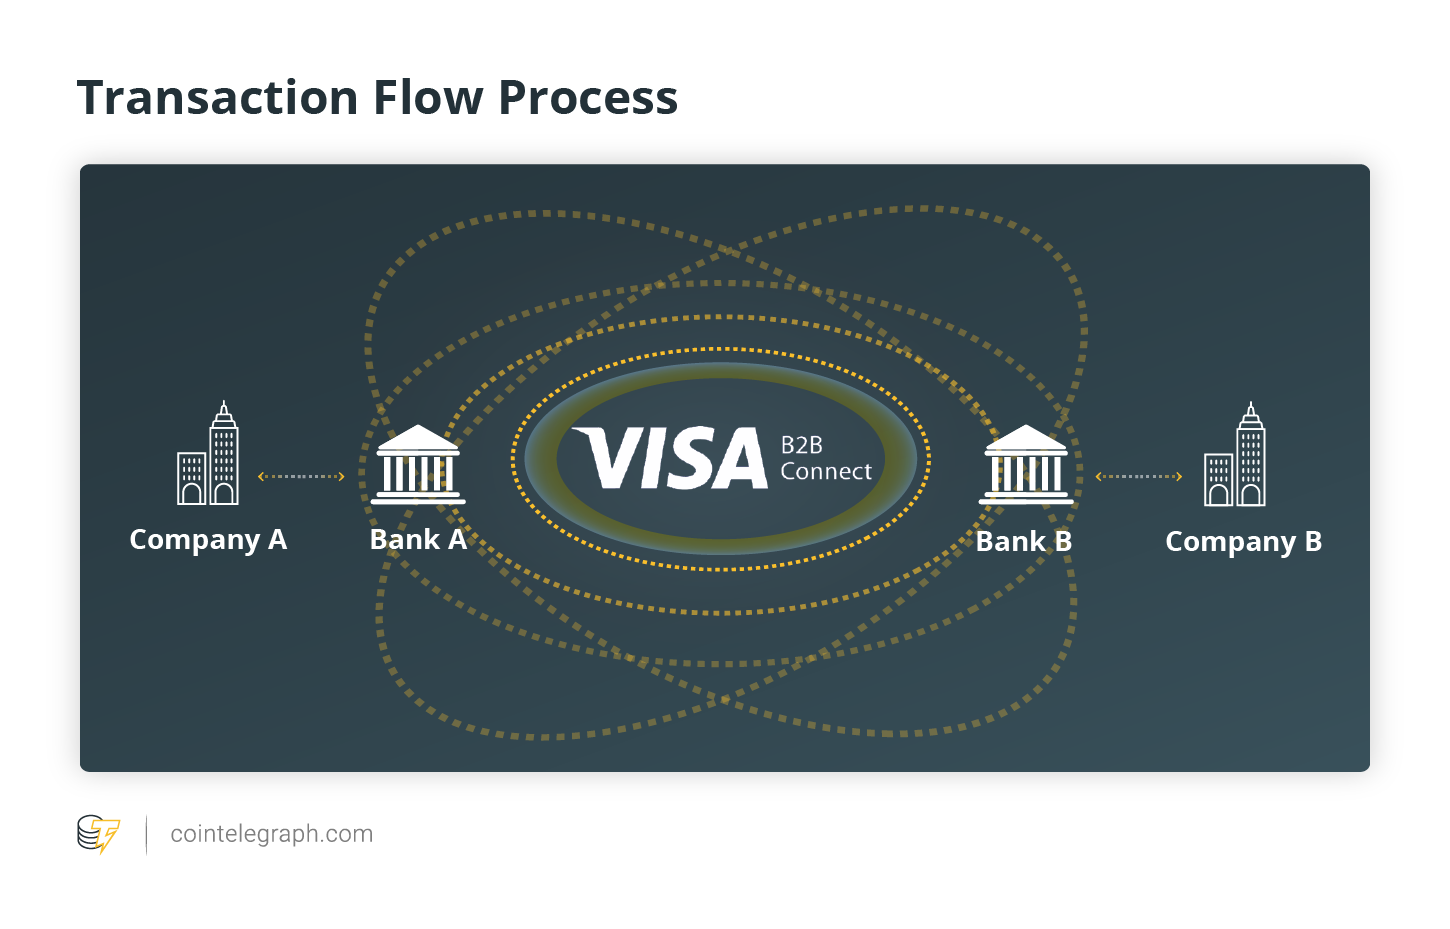 Transaction Flow Process